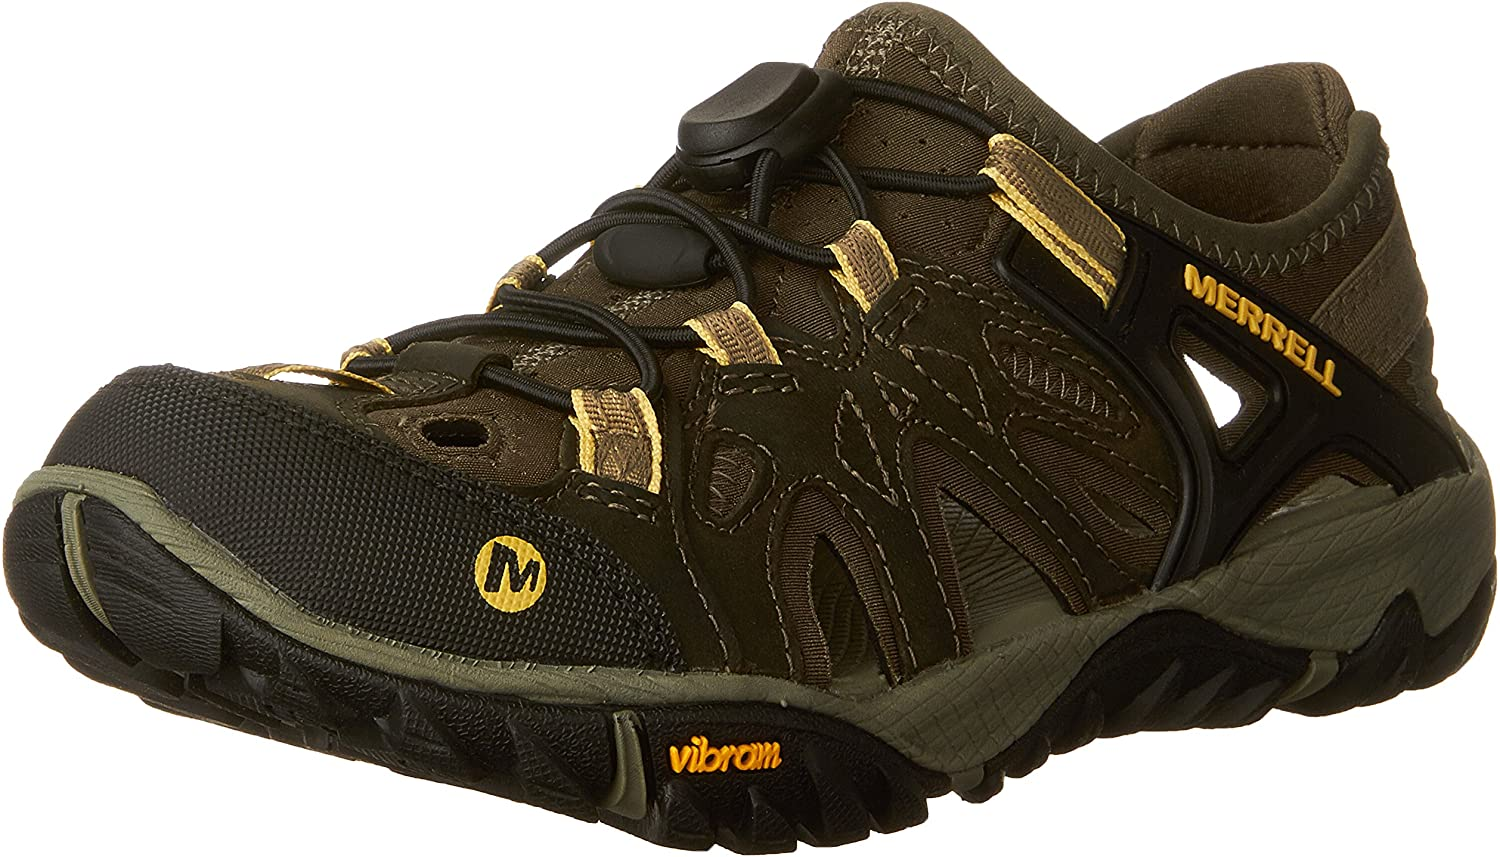   Merrell Women's All Out Blaze Sieve Water Shoe, Olive Night, 7 M US   Water Shoes